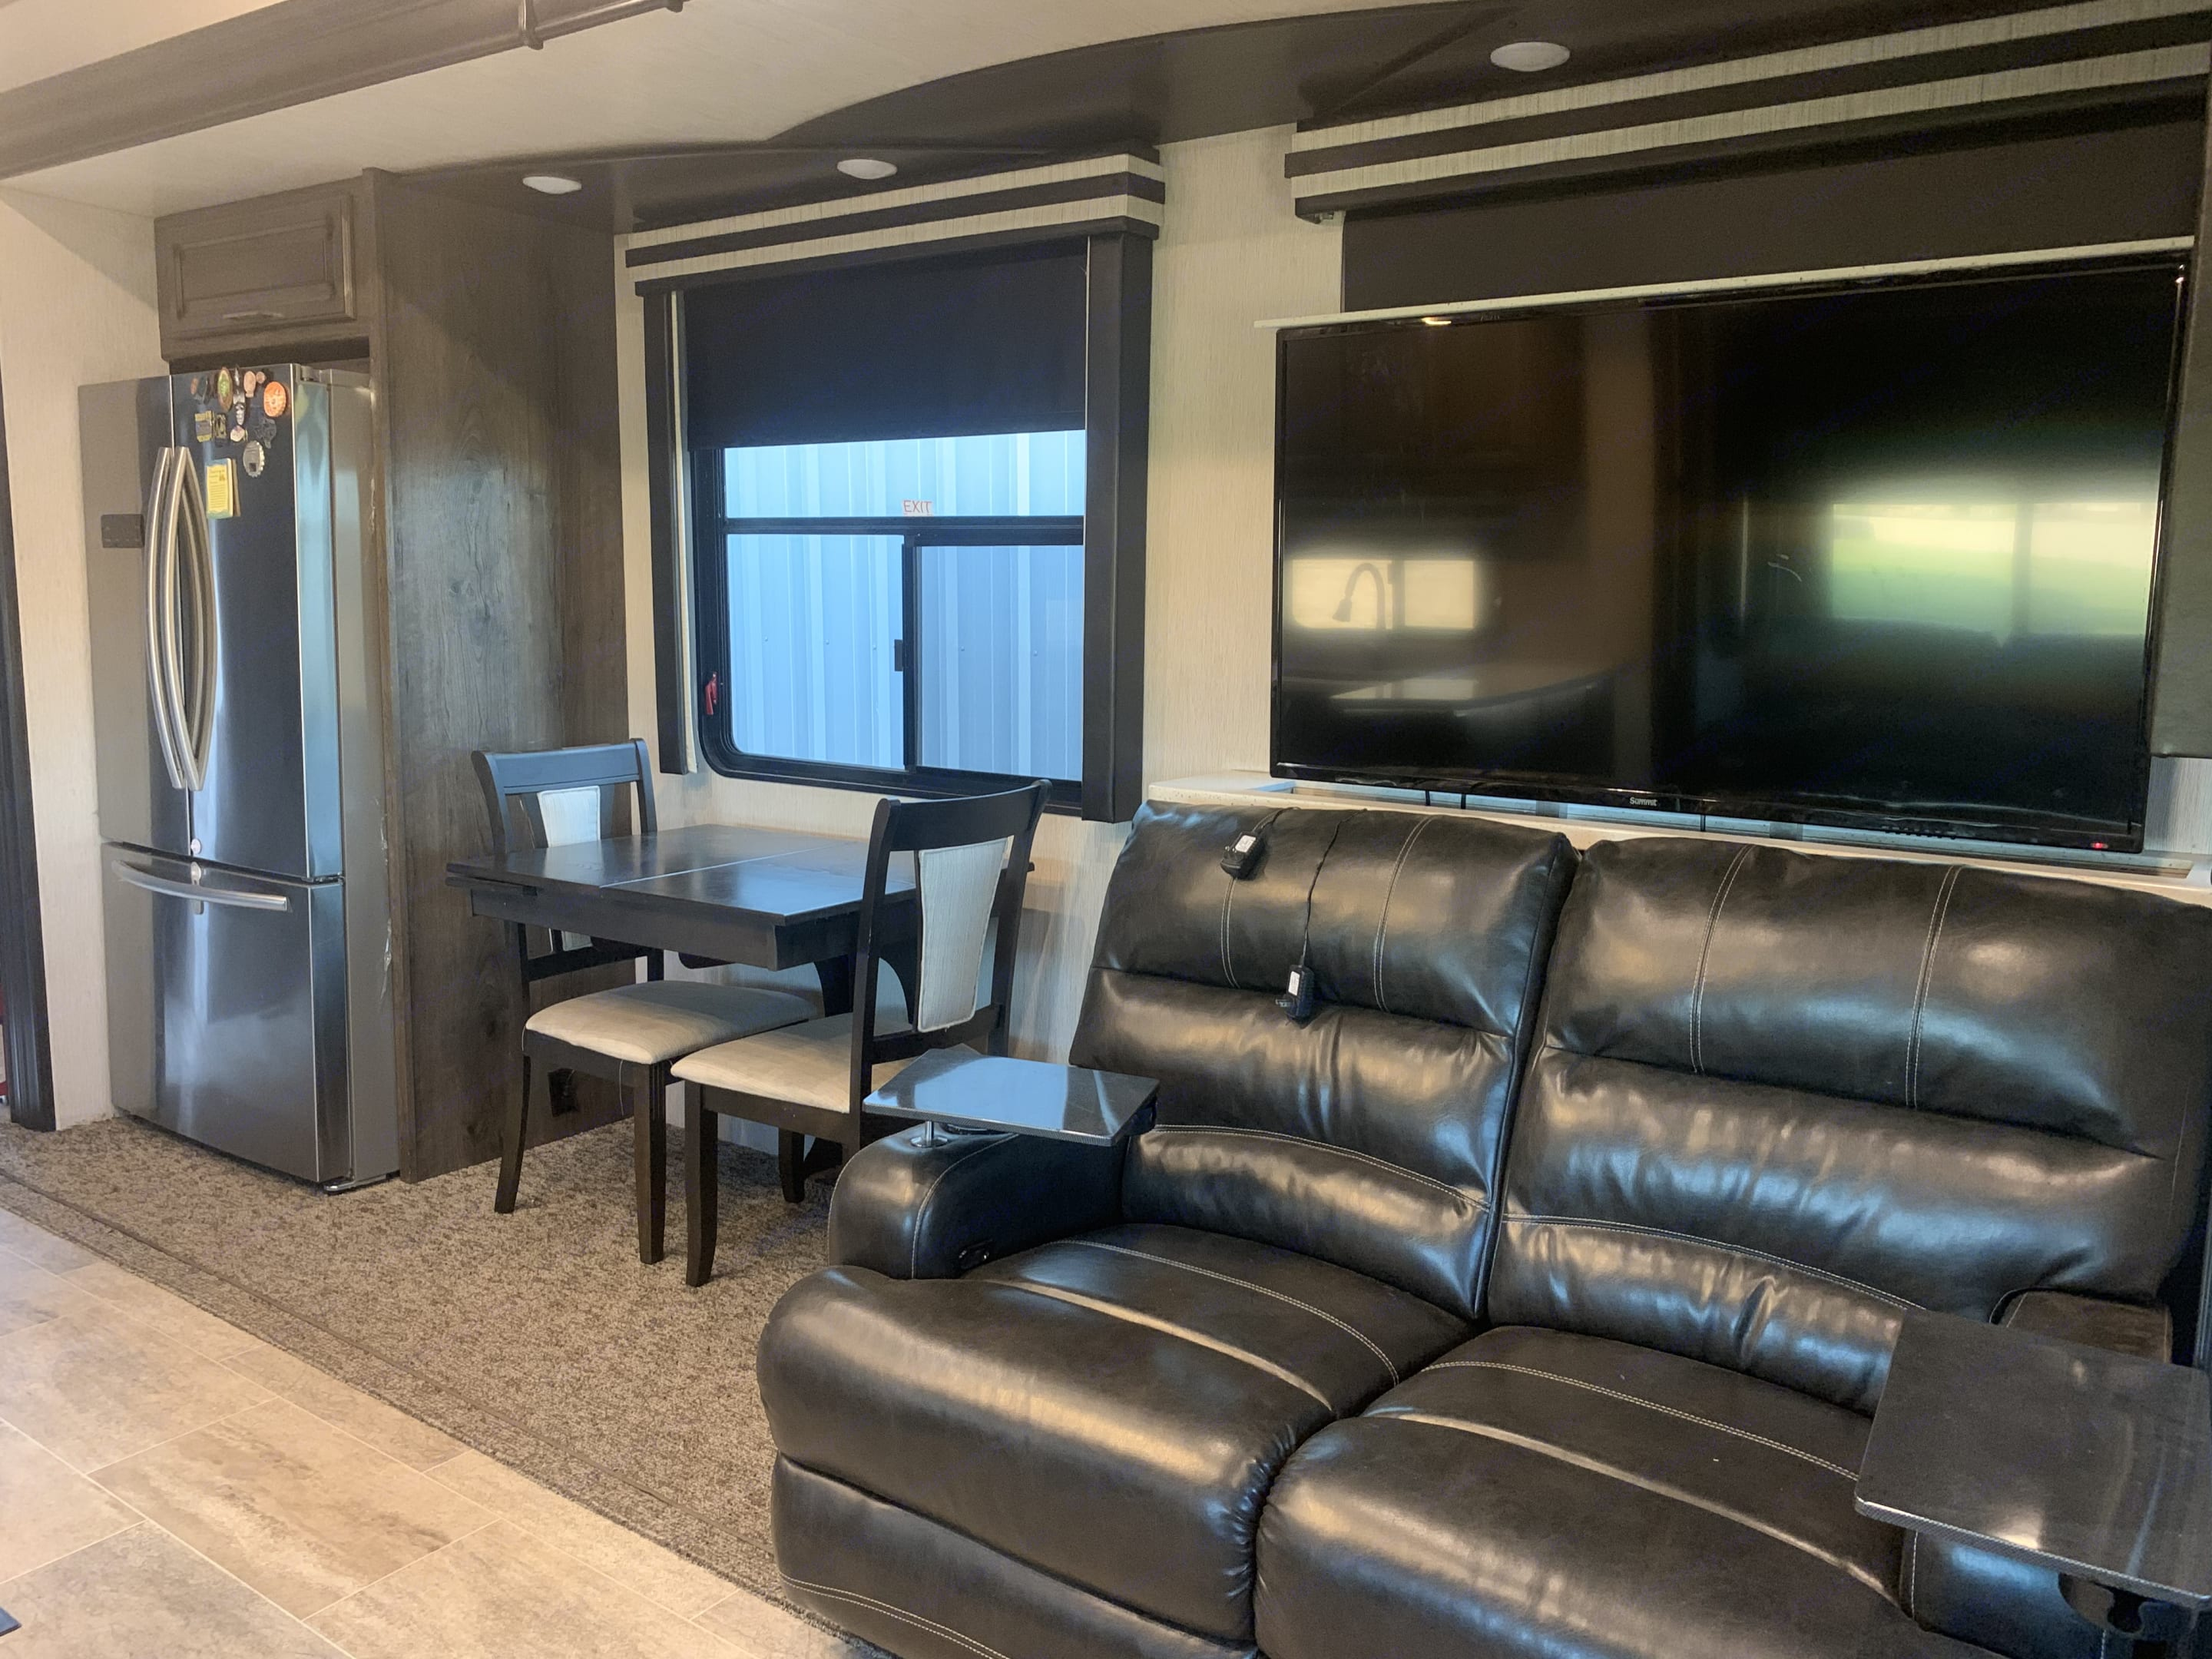 Full-size refrigerator. Kitchen table opens up to seat 4 people. Heartland Gateway 2017